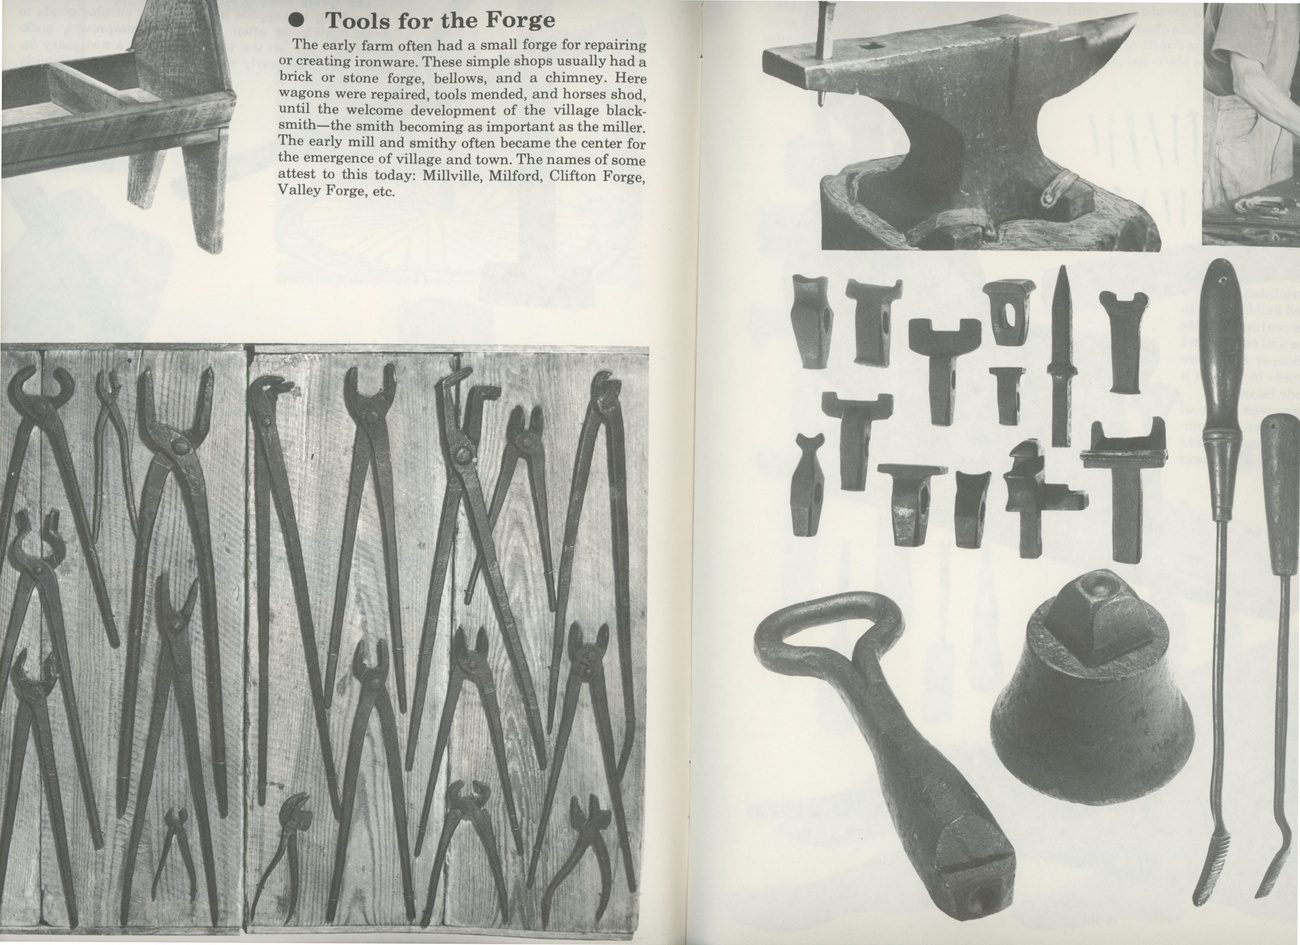 Early Tools Equipment Smith book antique blacksmith planes collecting vintage